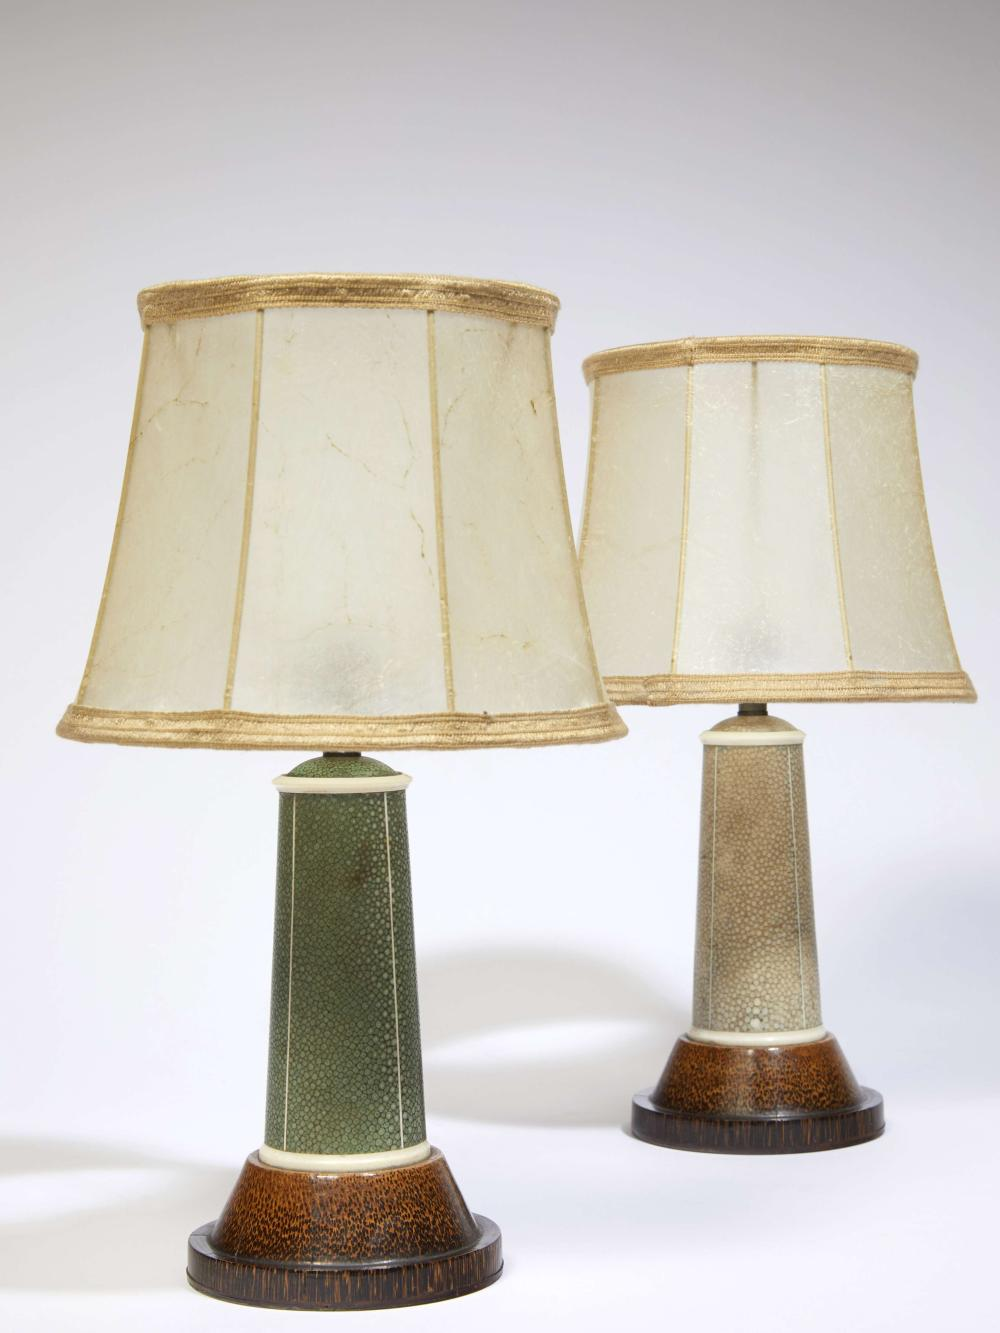 Clement Rousseau 1872 1950 Lampe De Table Circa 1925 In 2020 Table Lamp Lighting Lamp Table